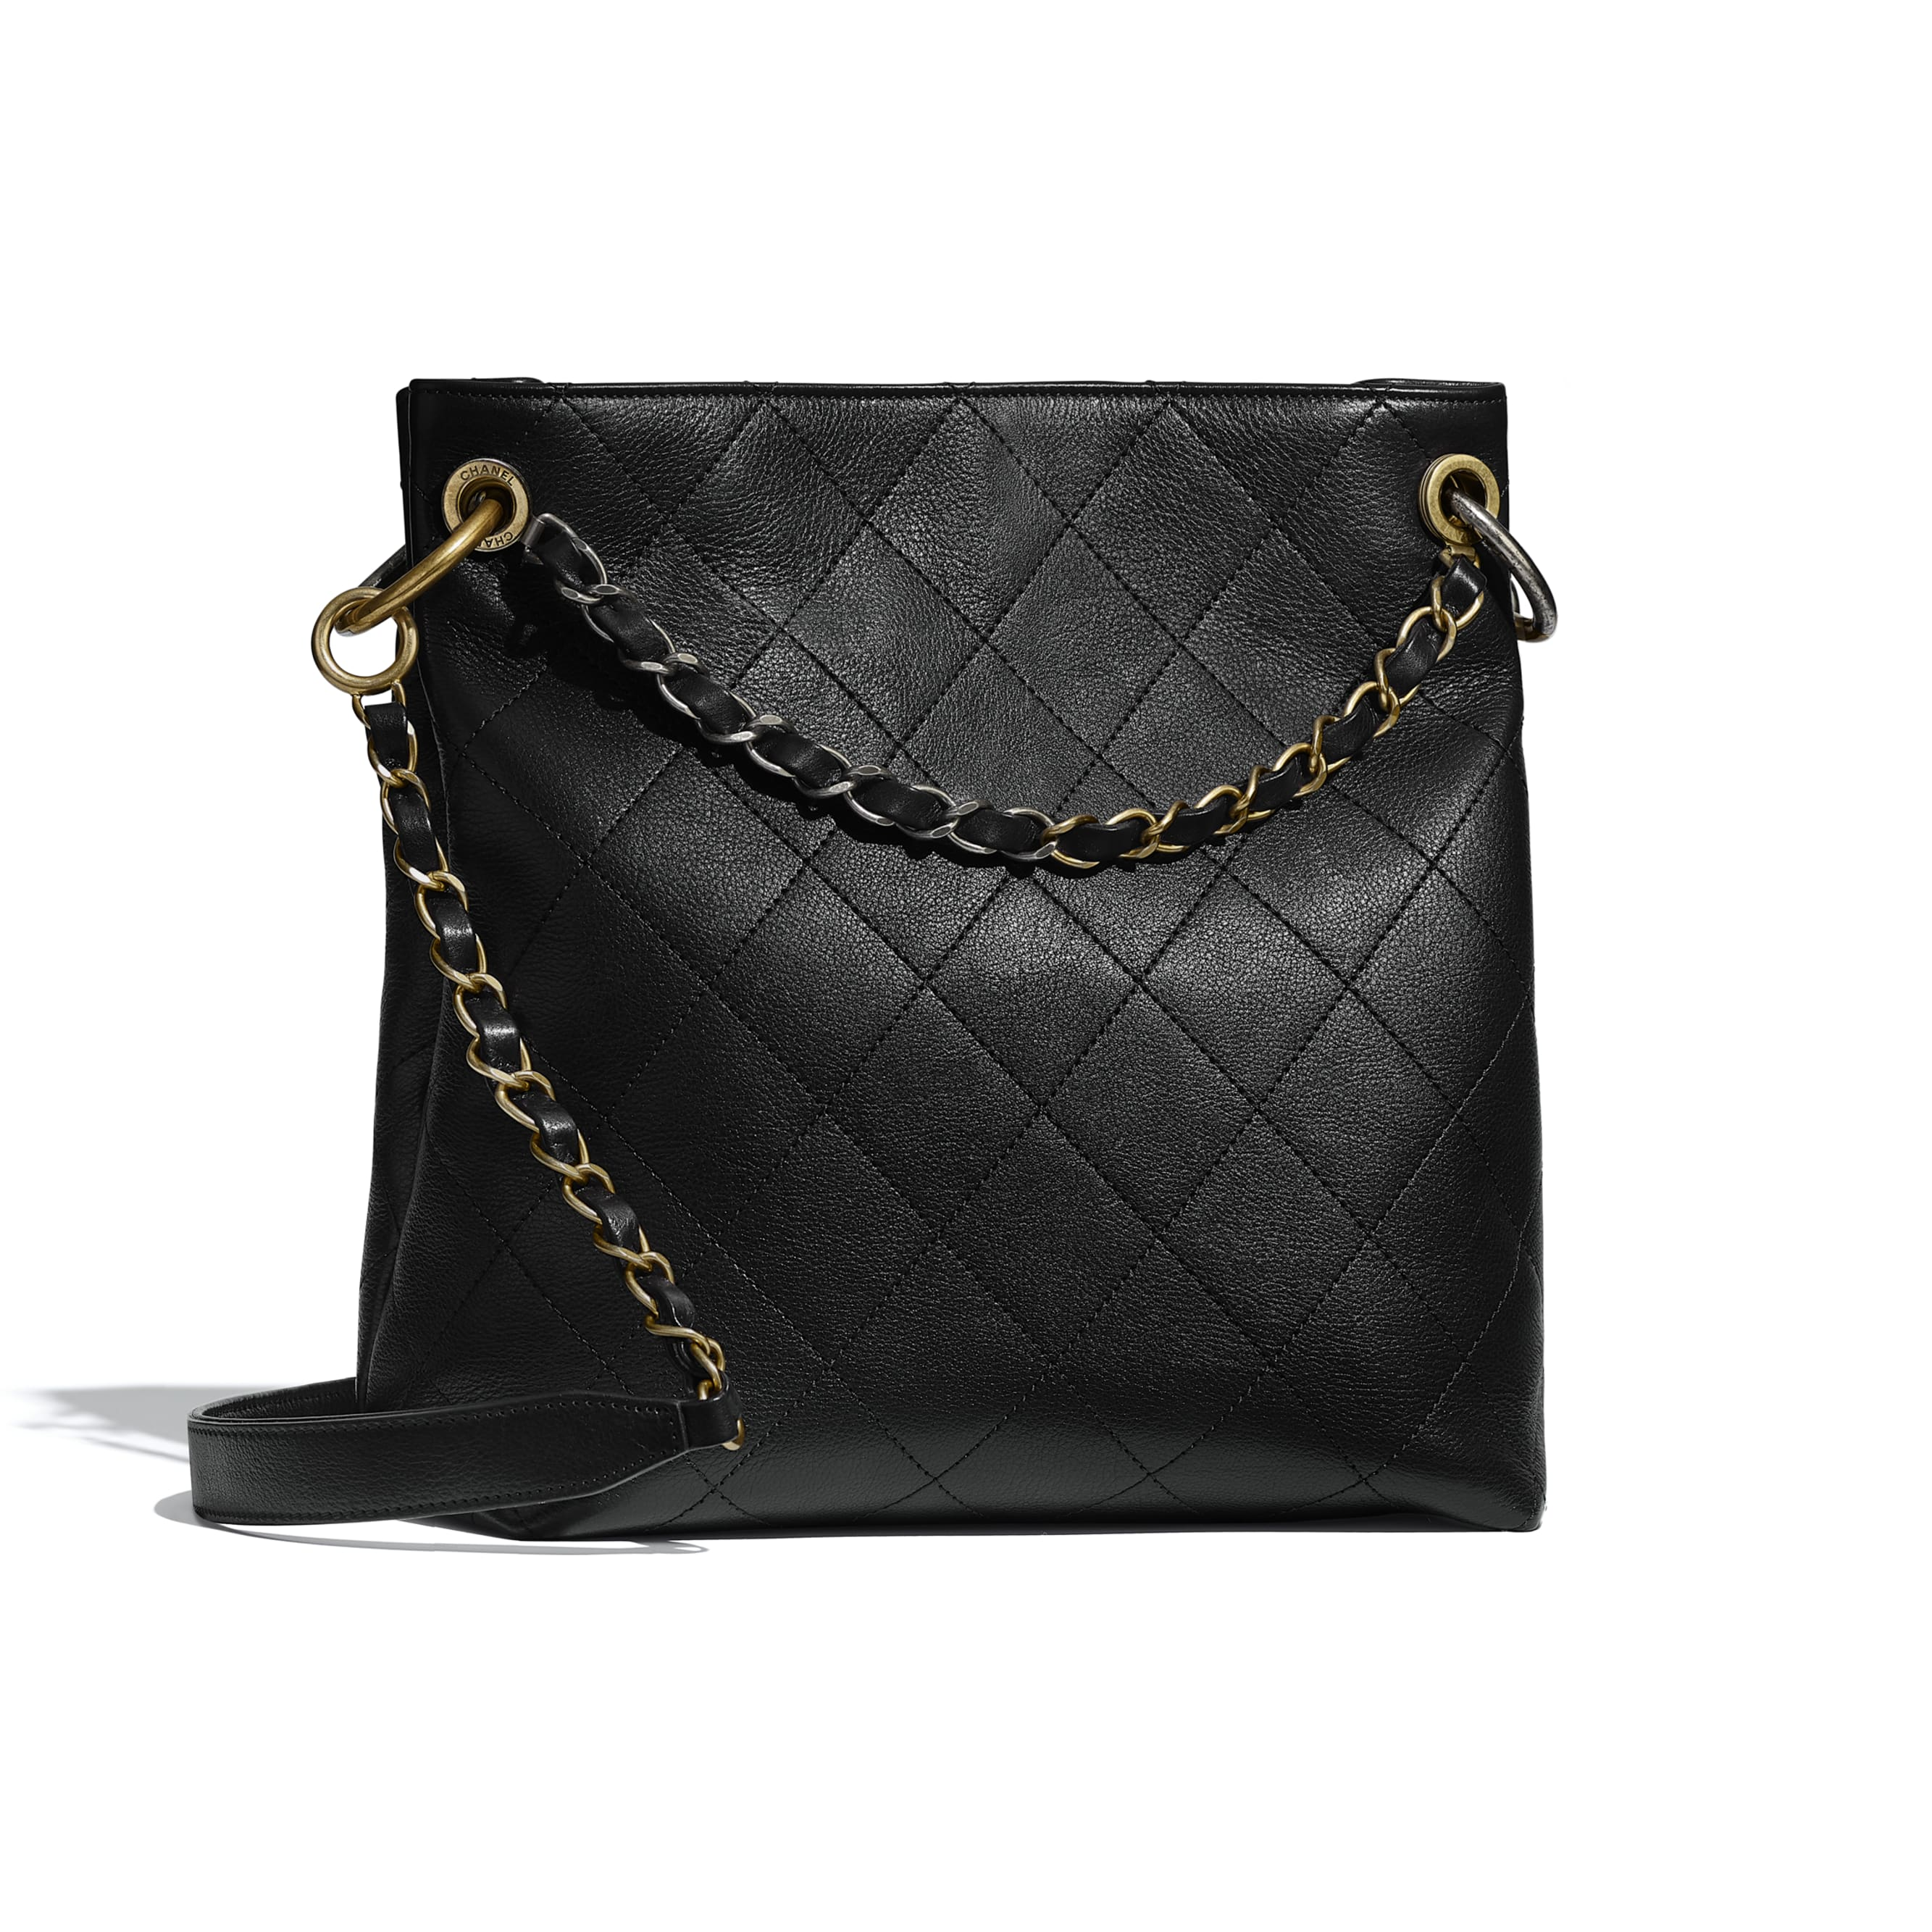 Hobo Handbag - Black - Calfskin, Gold-Tone, Silver-Tone & Ruthenium-Finish Metal - CHANEL - Alternative view - see standard sized version